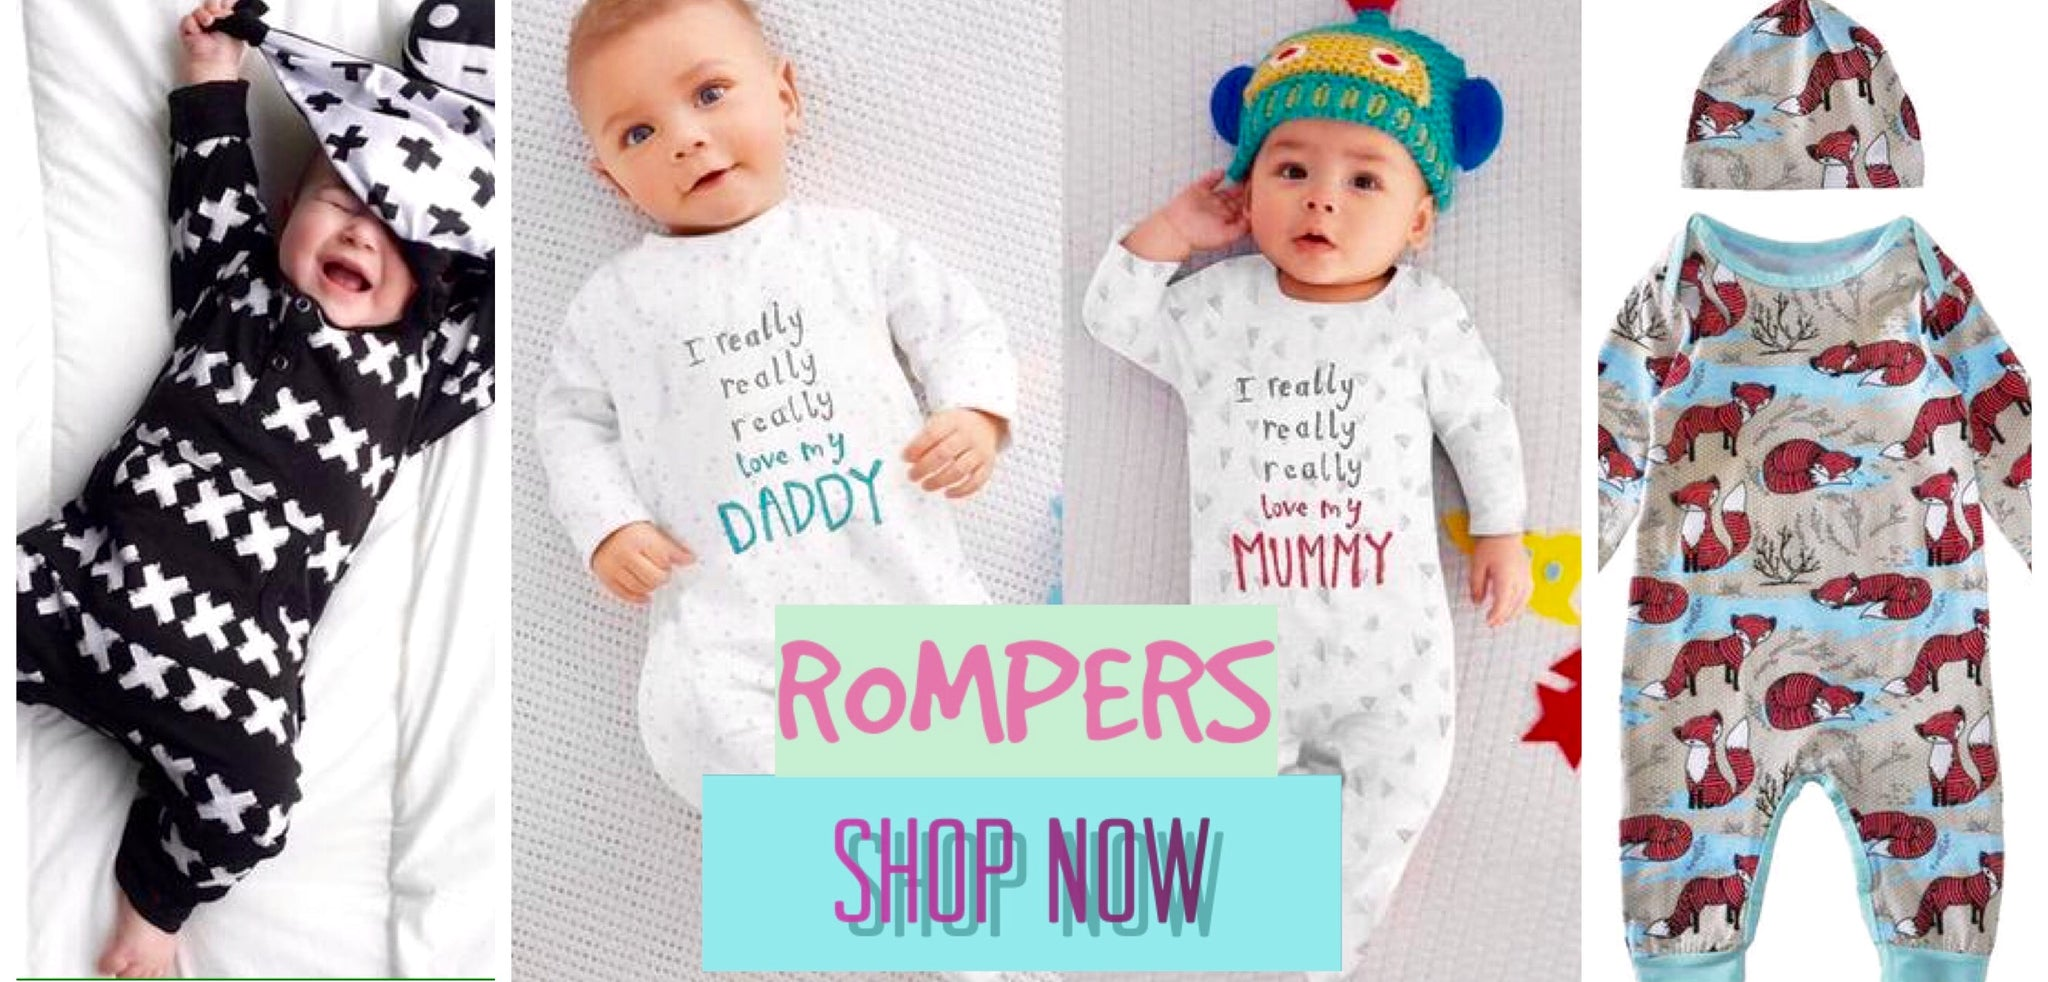 Baby & Children s Boutique Trendy Affordable Clothing & More – My